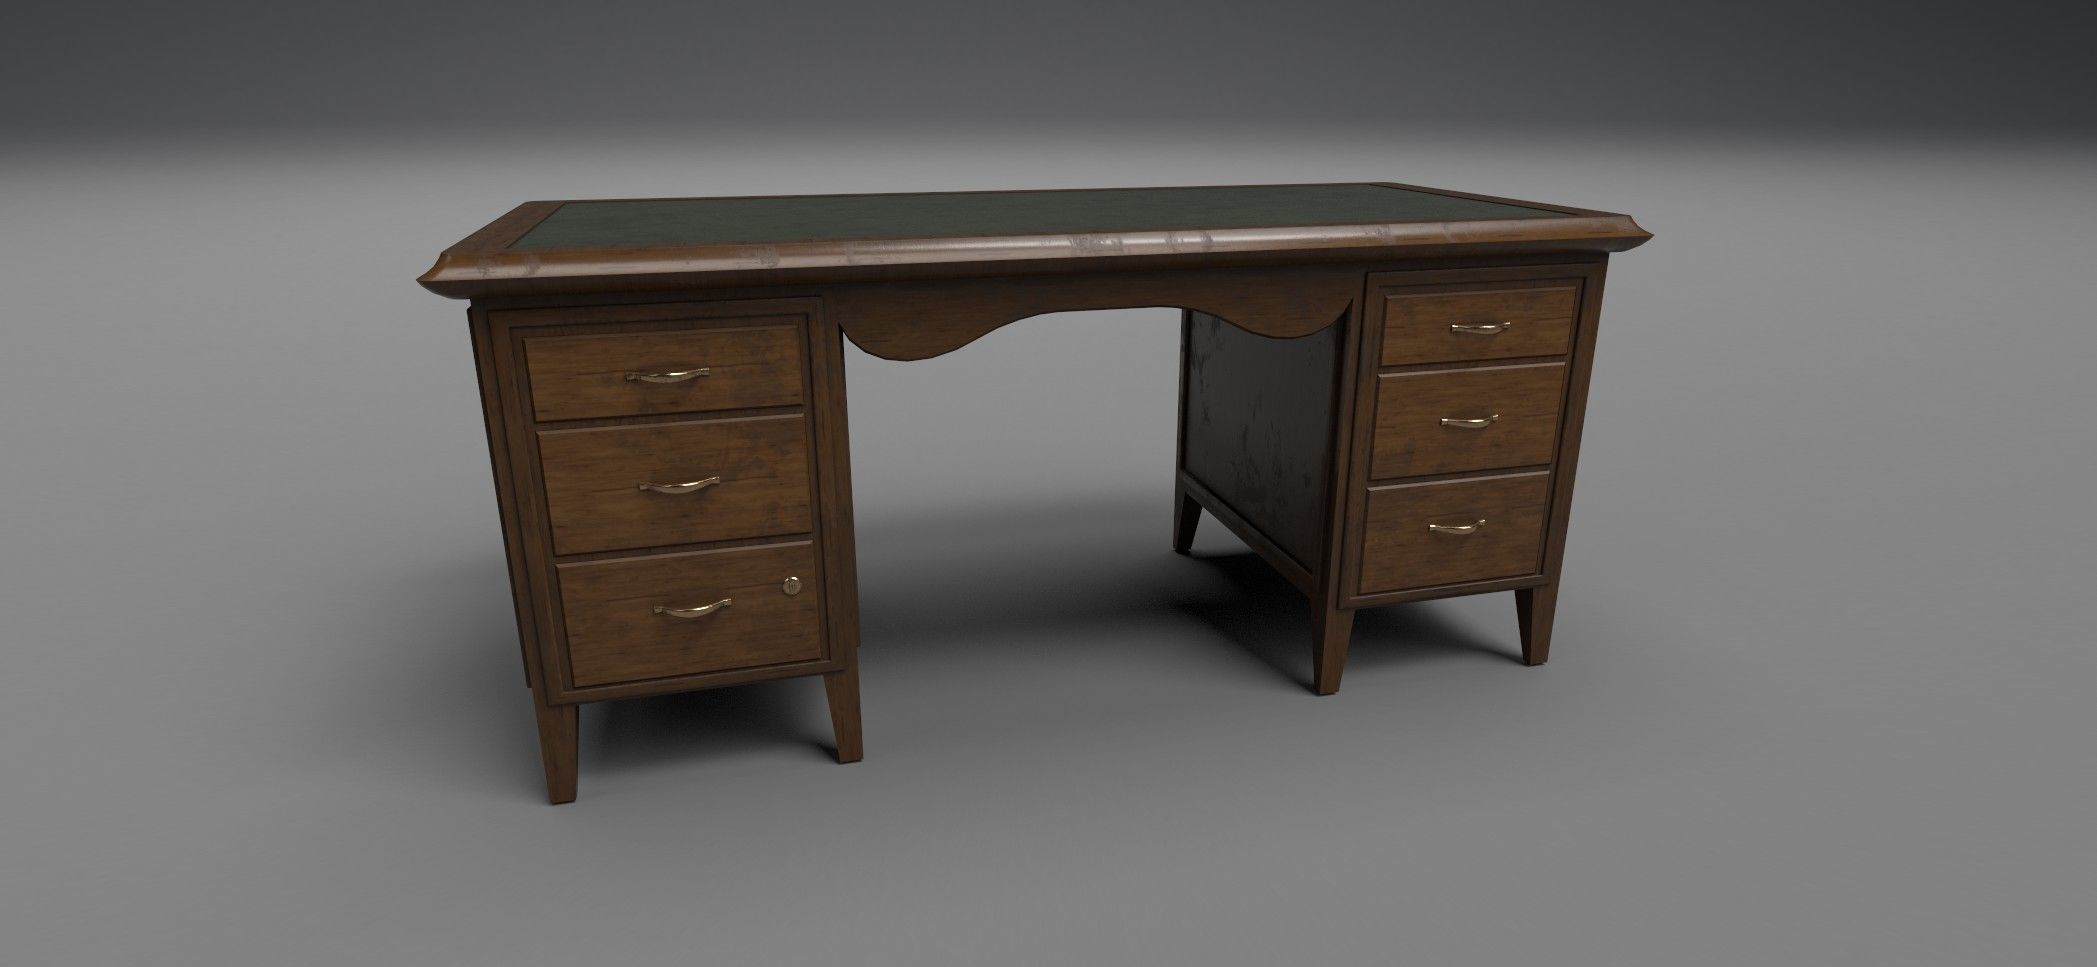 Swell Antique Office Desk 3D Model Download Free Architecture Designs Crovemadebymaigaardcom